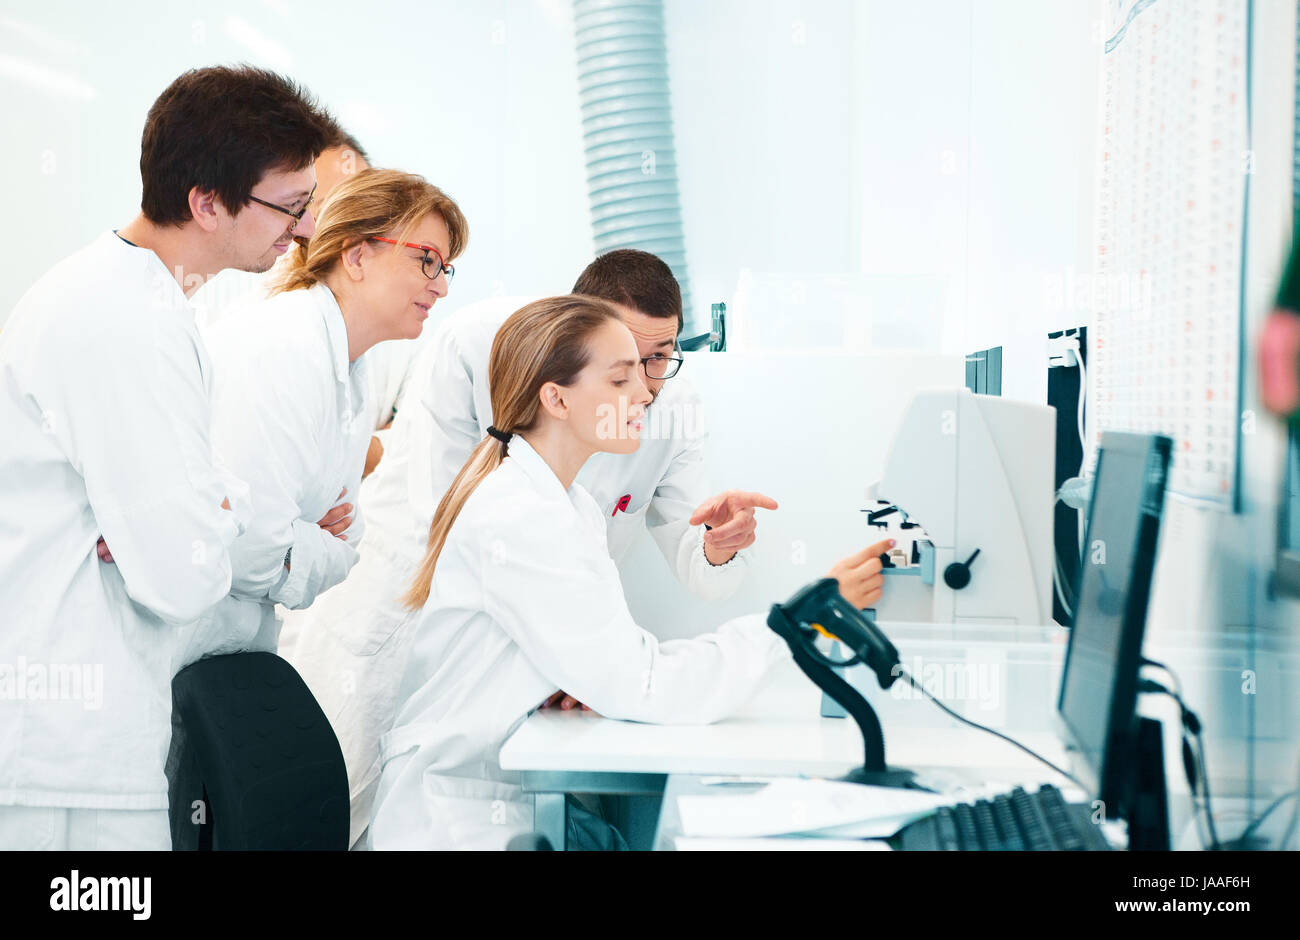 Researchers in lab, doctors, scientists - Stock Image